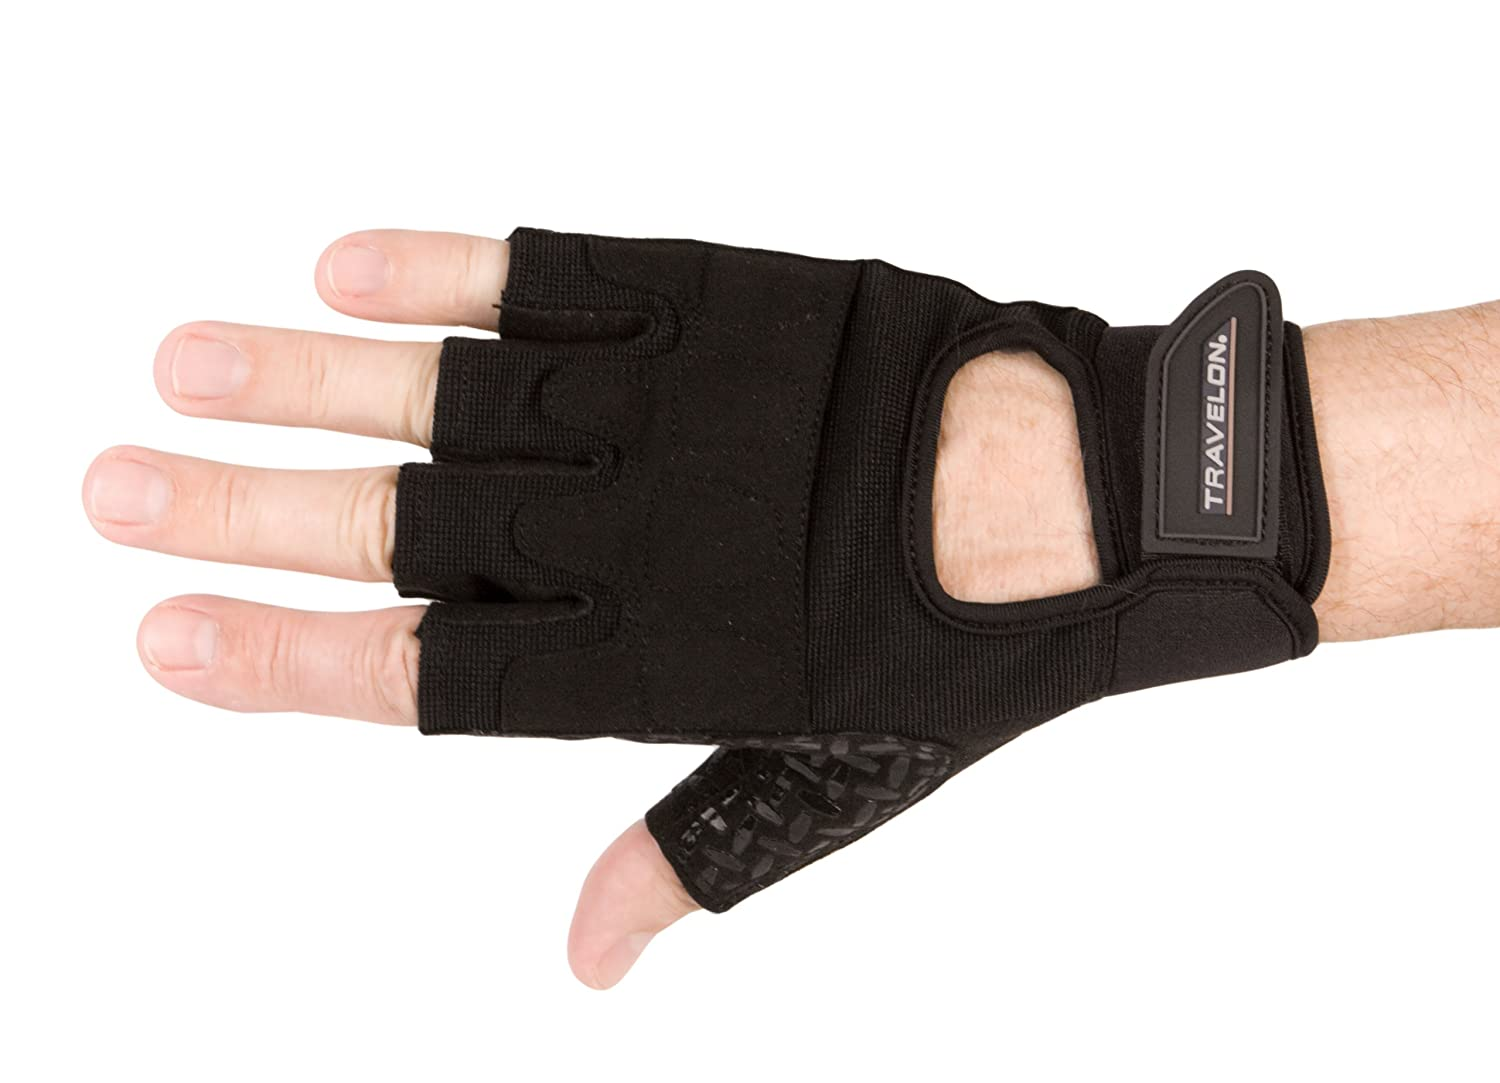 Travelon Adjustable Wrist All Purpose Gloves, Black, X-Large   B005D1MIWY